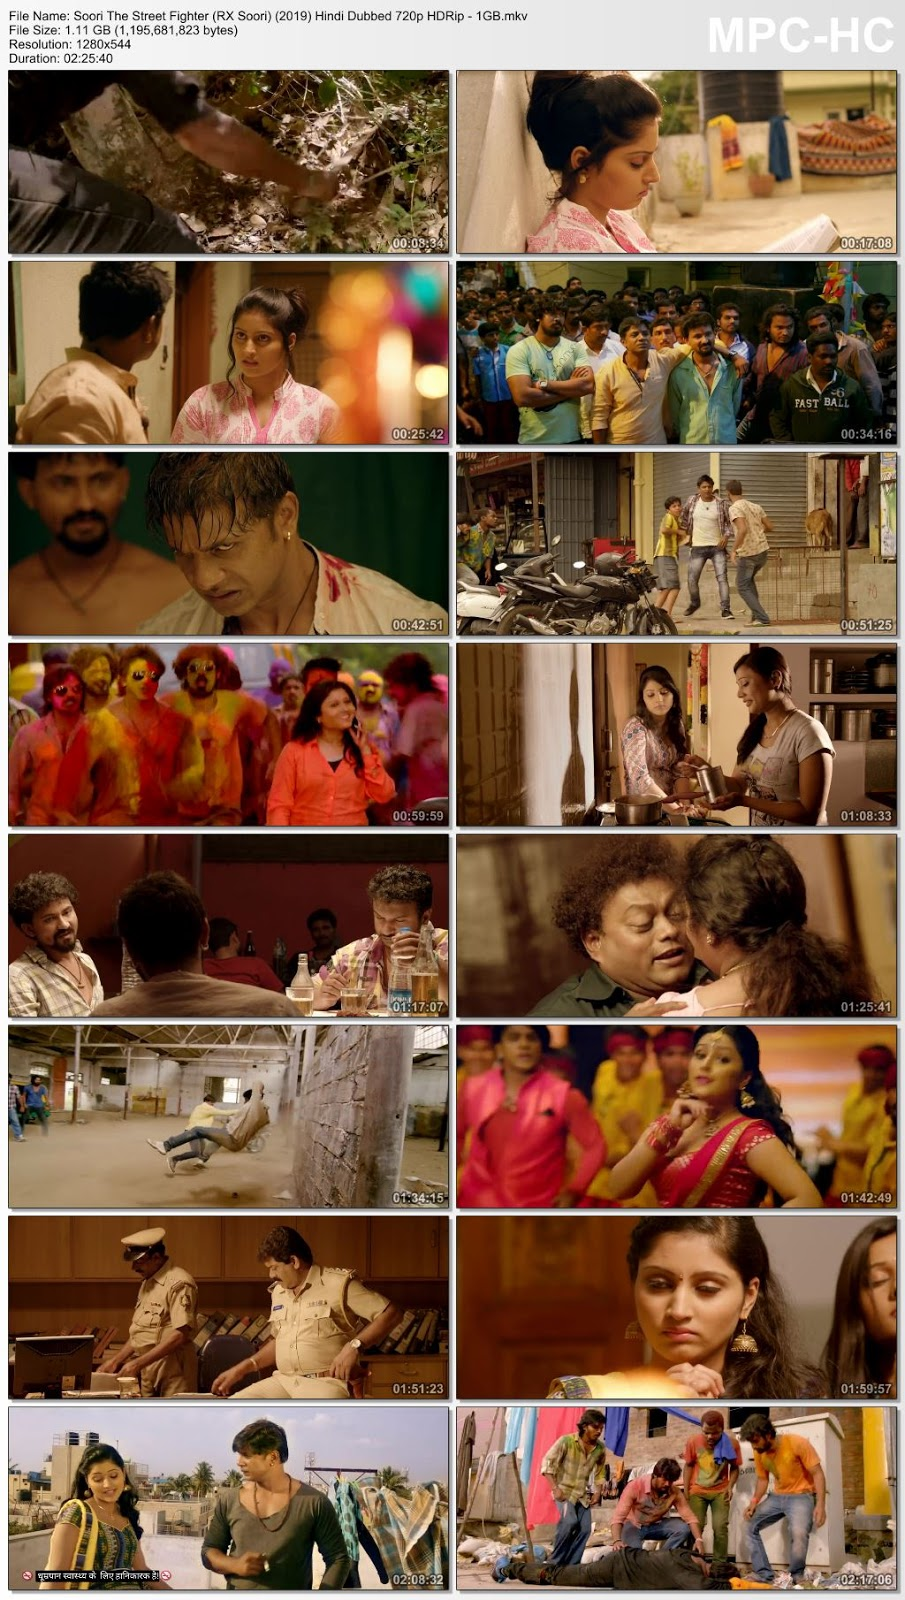 Soori The Street Fighter (RX Soori) (2019) Hindi Dubbed 480p HDRip – 400MB Desirehub